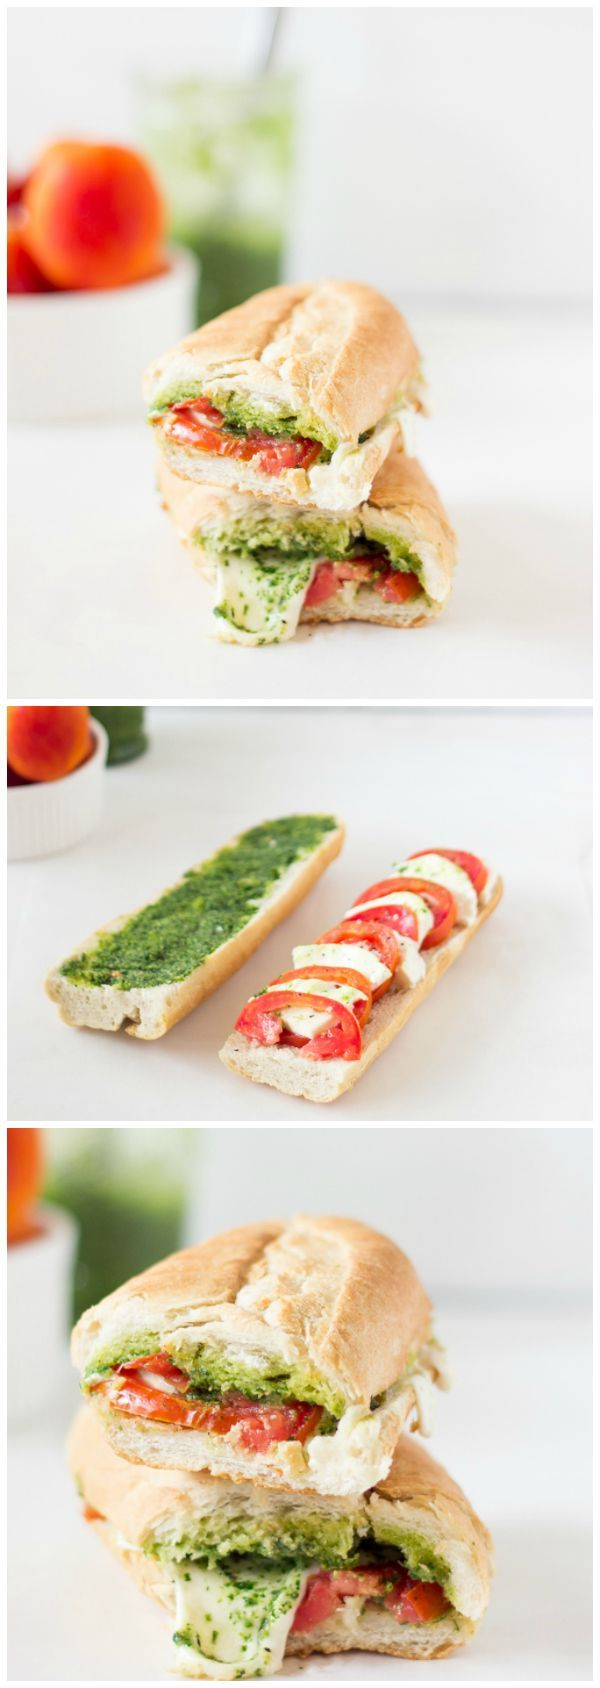 Caprese Sandwich: takes a twist by being toasted with melted mozzarella, and creamy parsley pesto. Perfect for an everyday lunch or a picnic.